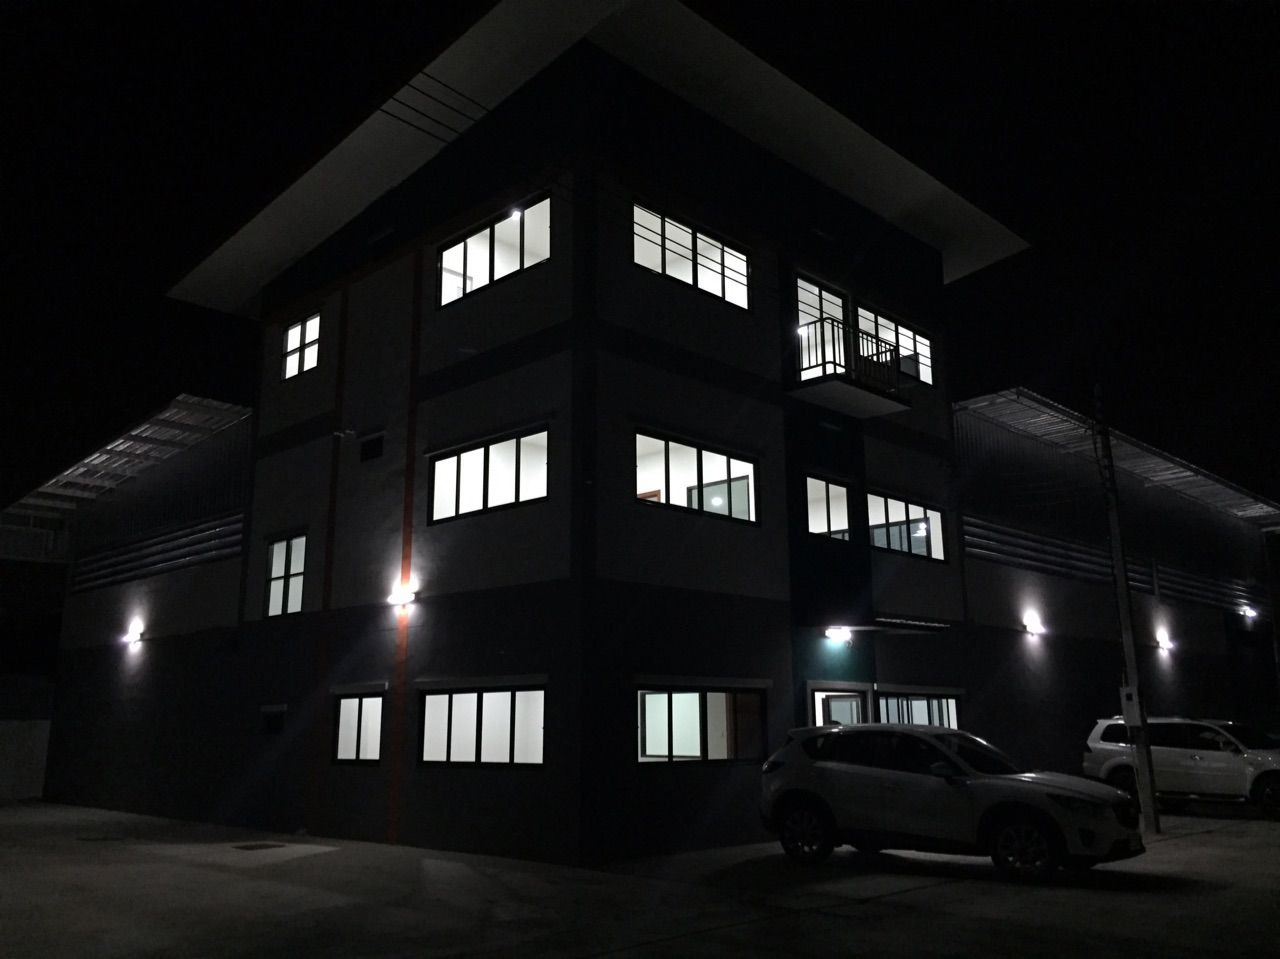 One of our three hangers at the facility, at night.